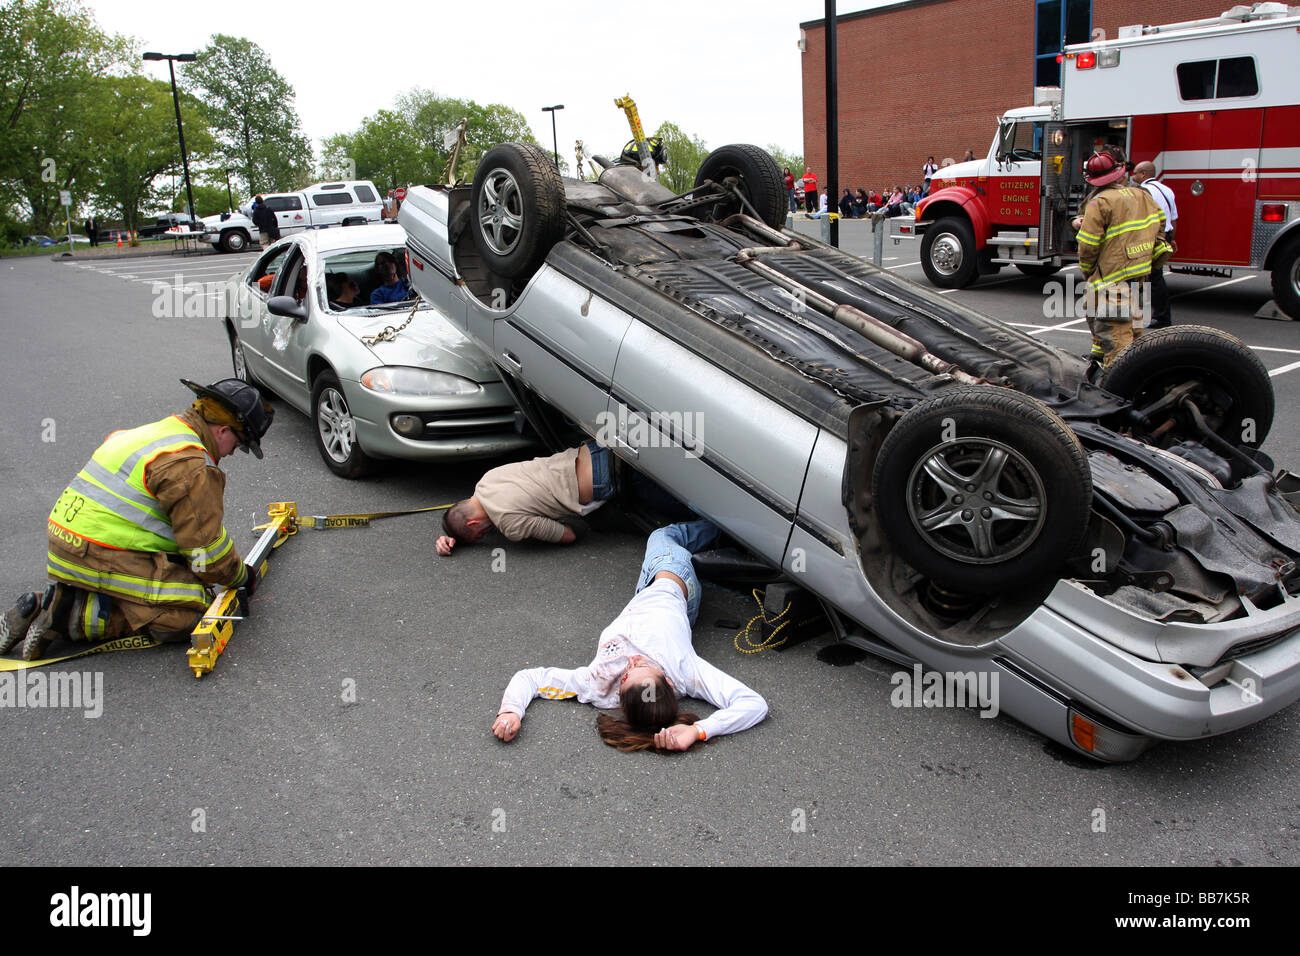 a-fake-dui-car-crash-BB7K5R.jpg